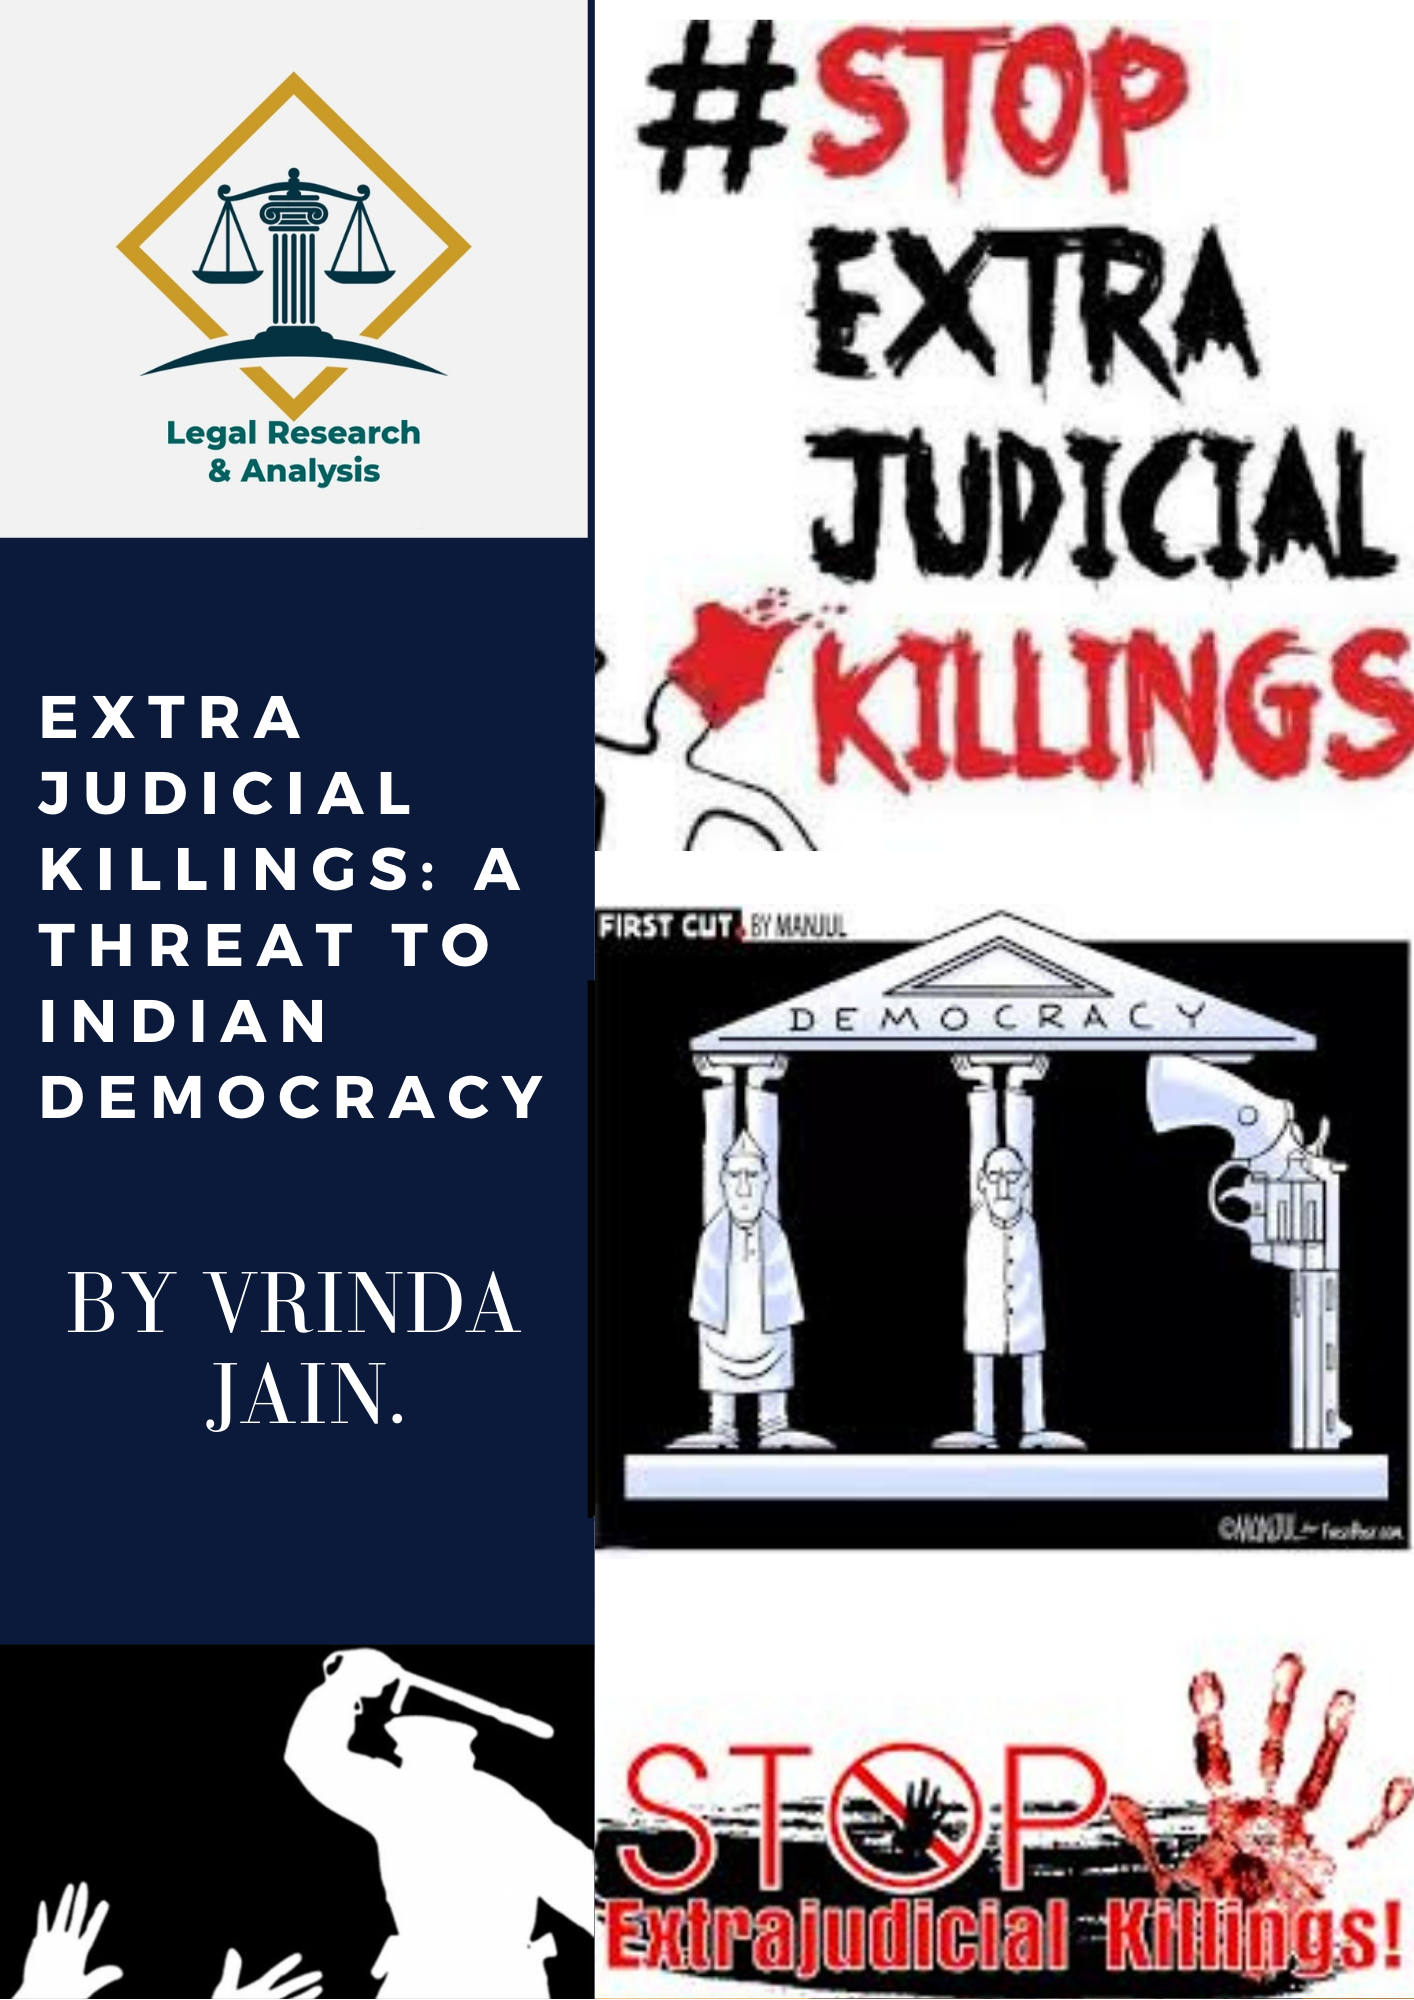 EXTRA JUDICIAL KILLINGS: A THREAT TO INDIAN DEMOCRACY